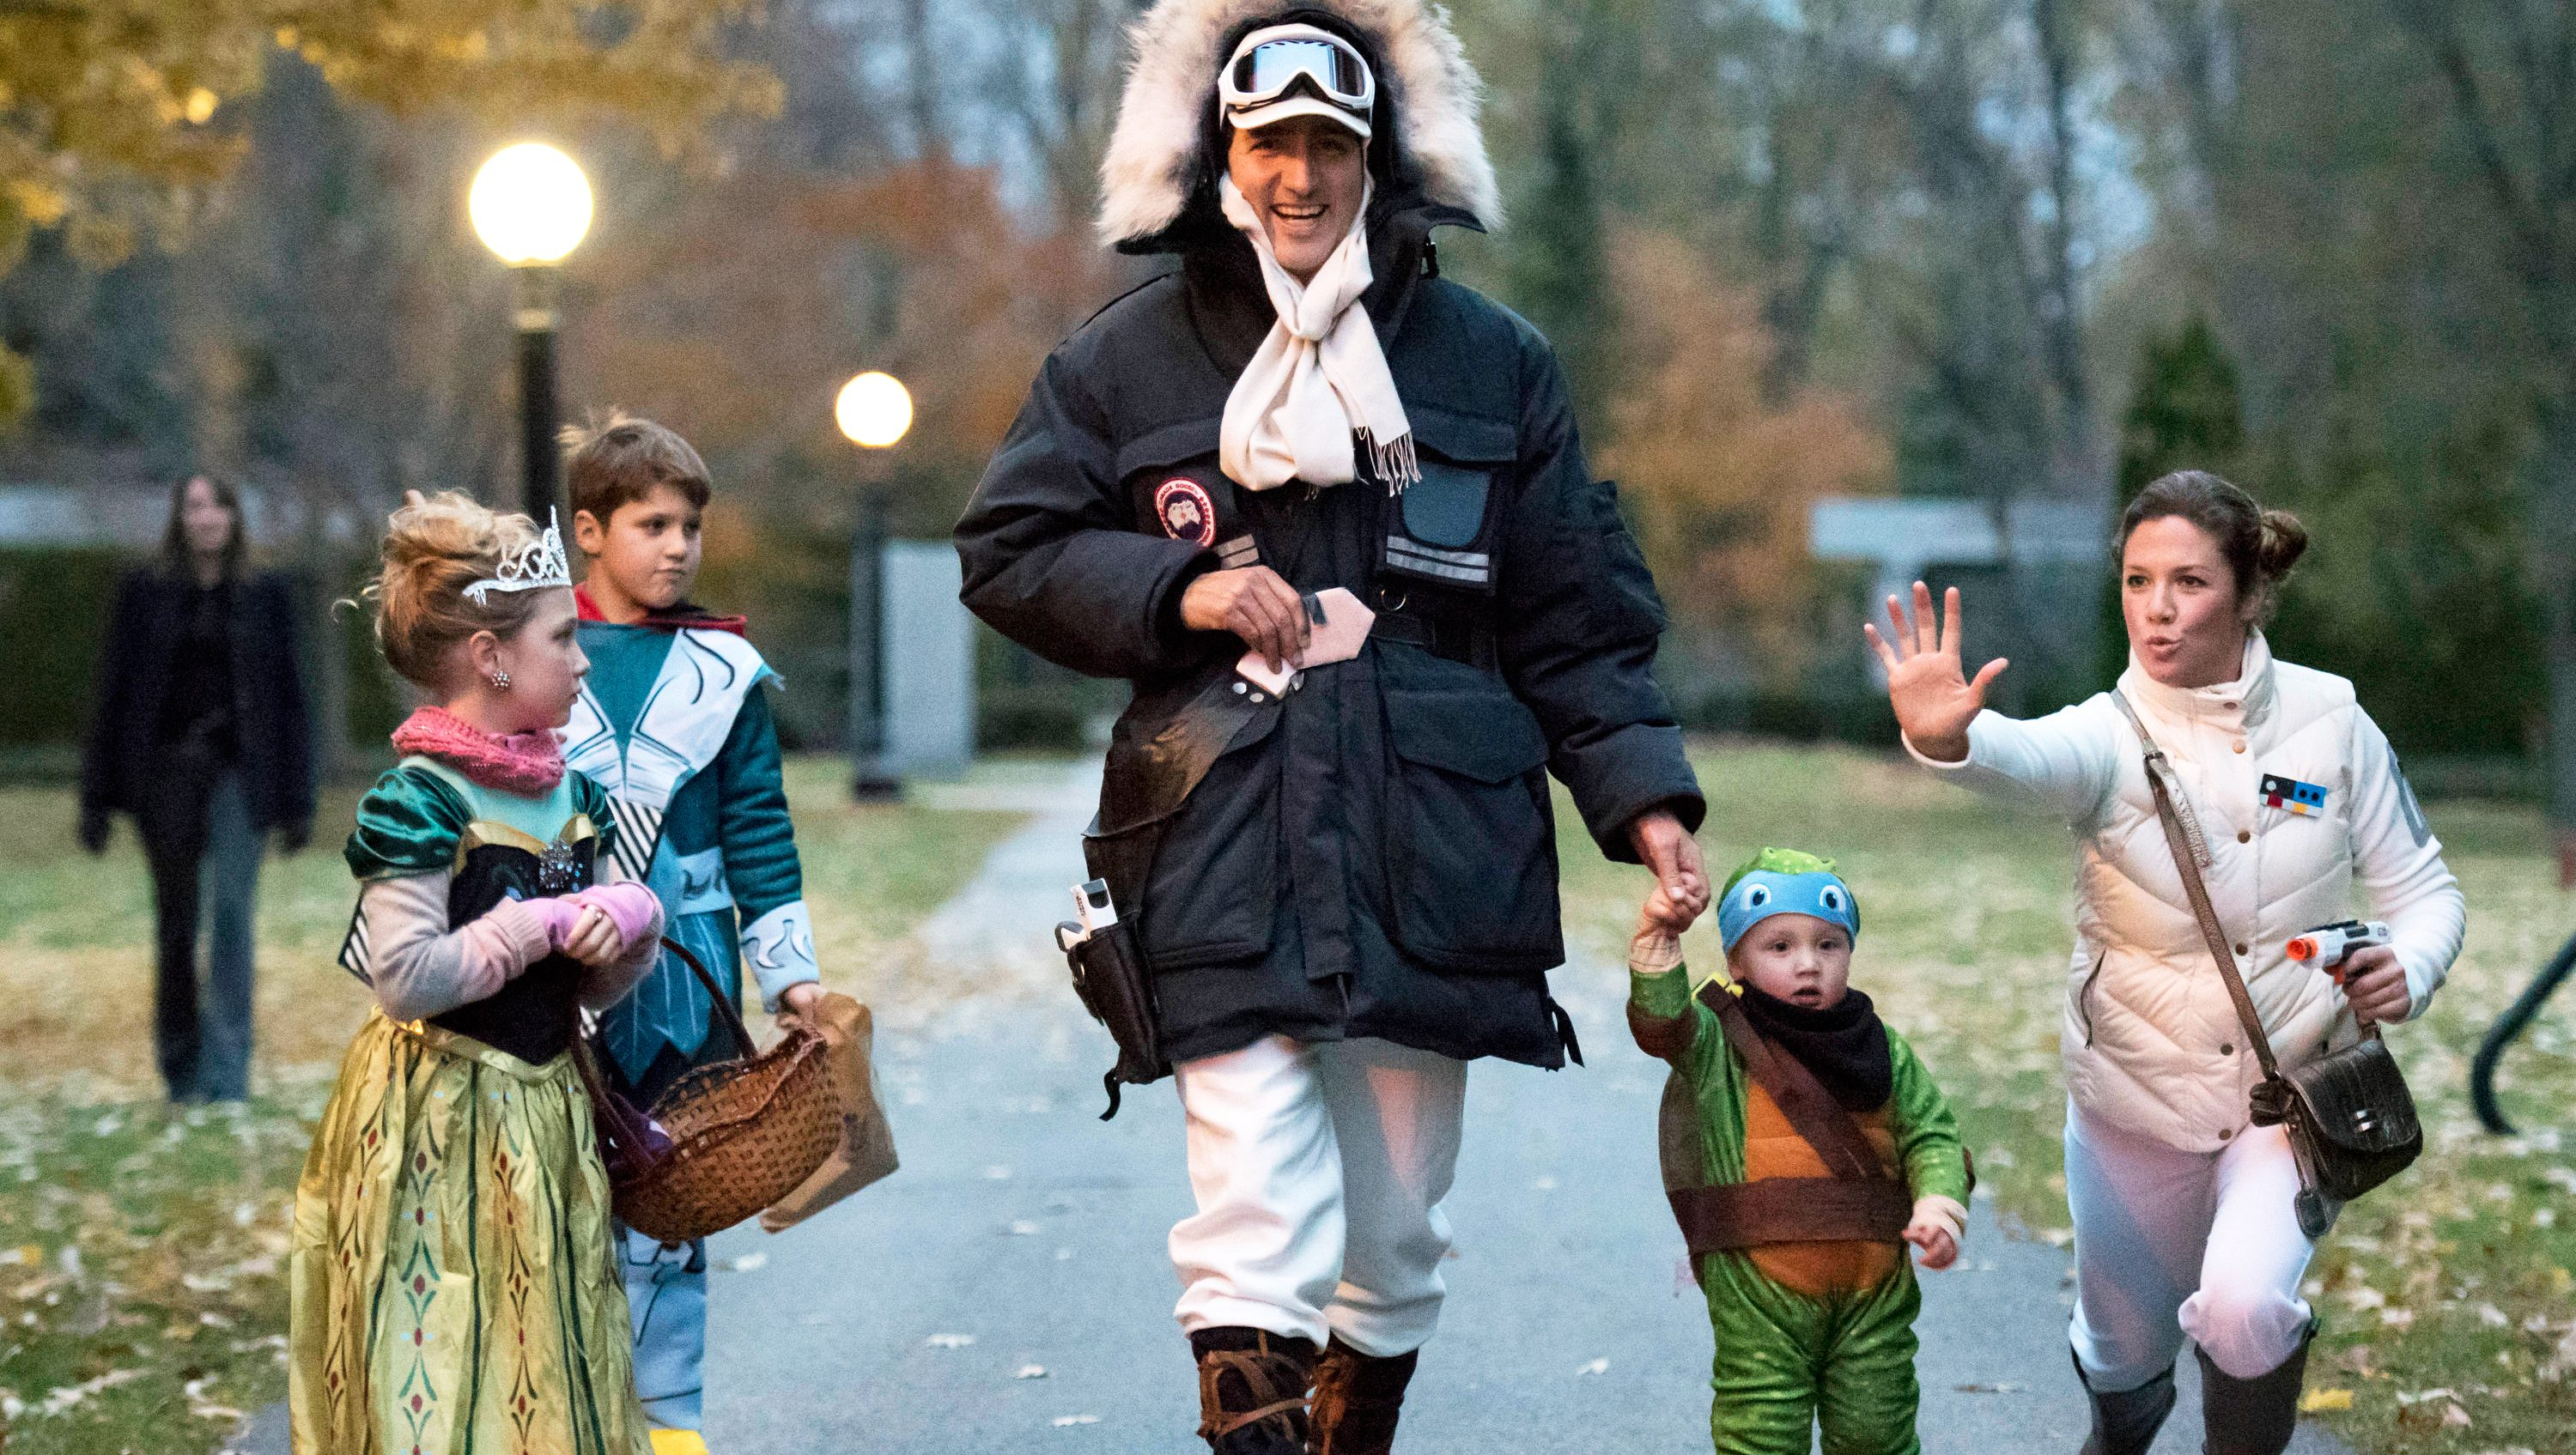 Prime Minister-designate Justin Trudeau, dressed as Han Solo, walks with his children Hadrien, (2nd R), Ella-Grace and Xavier, as his wife Sophie Gregoire jokes with onlookers as the family prepares to go trick-or-treating on Halloween in Ottawa, Ontario, Canada October 31, 2015. REUTERS/Justin Tang/Pool/File Photo - RTX2GMRS